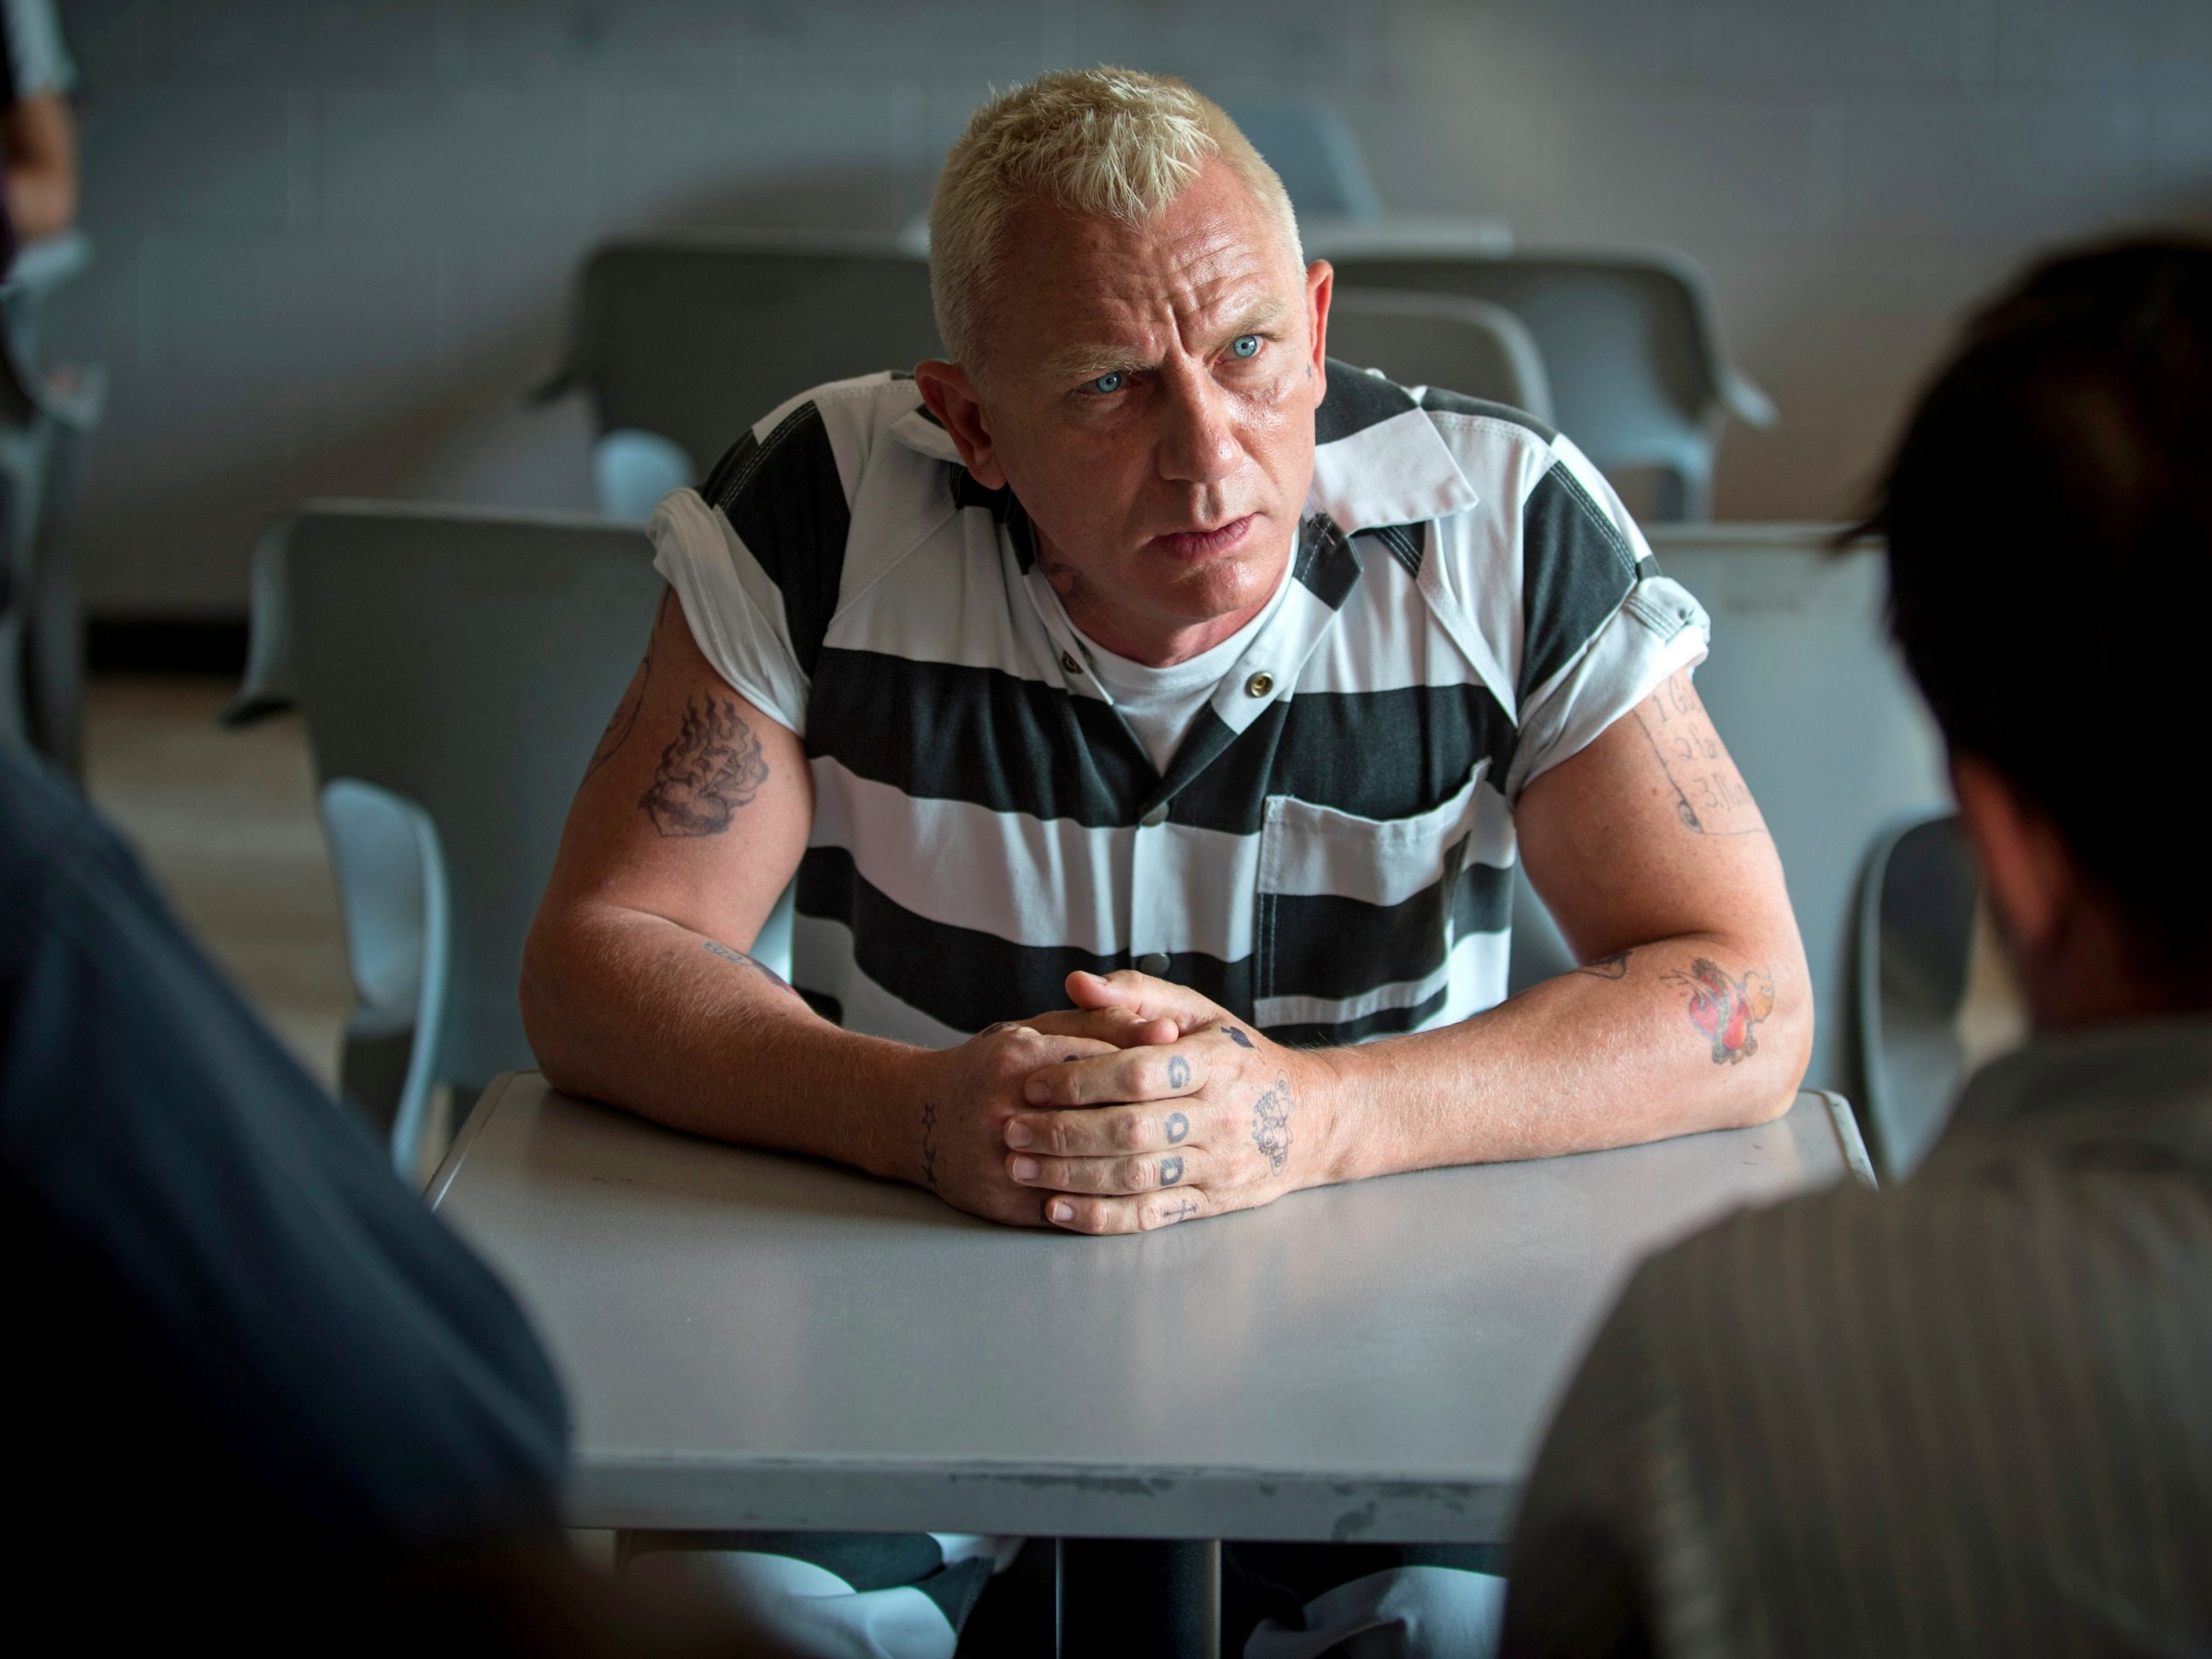 Logan Lucky puts a West Virginia spin on an Ocean's 11-style heist. It's terrific fun.